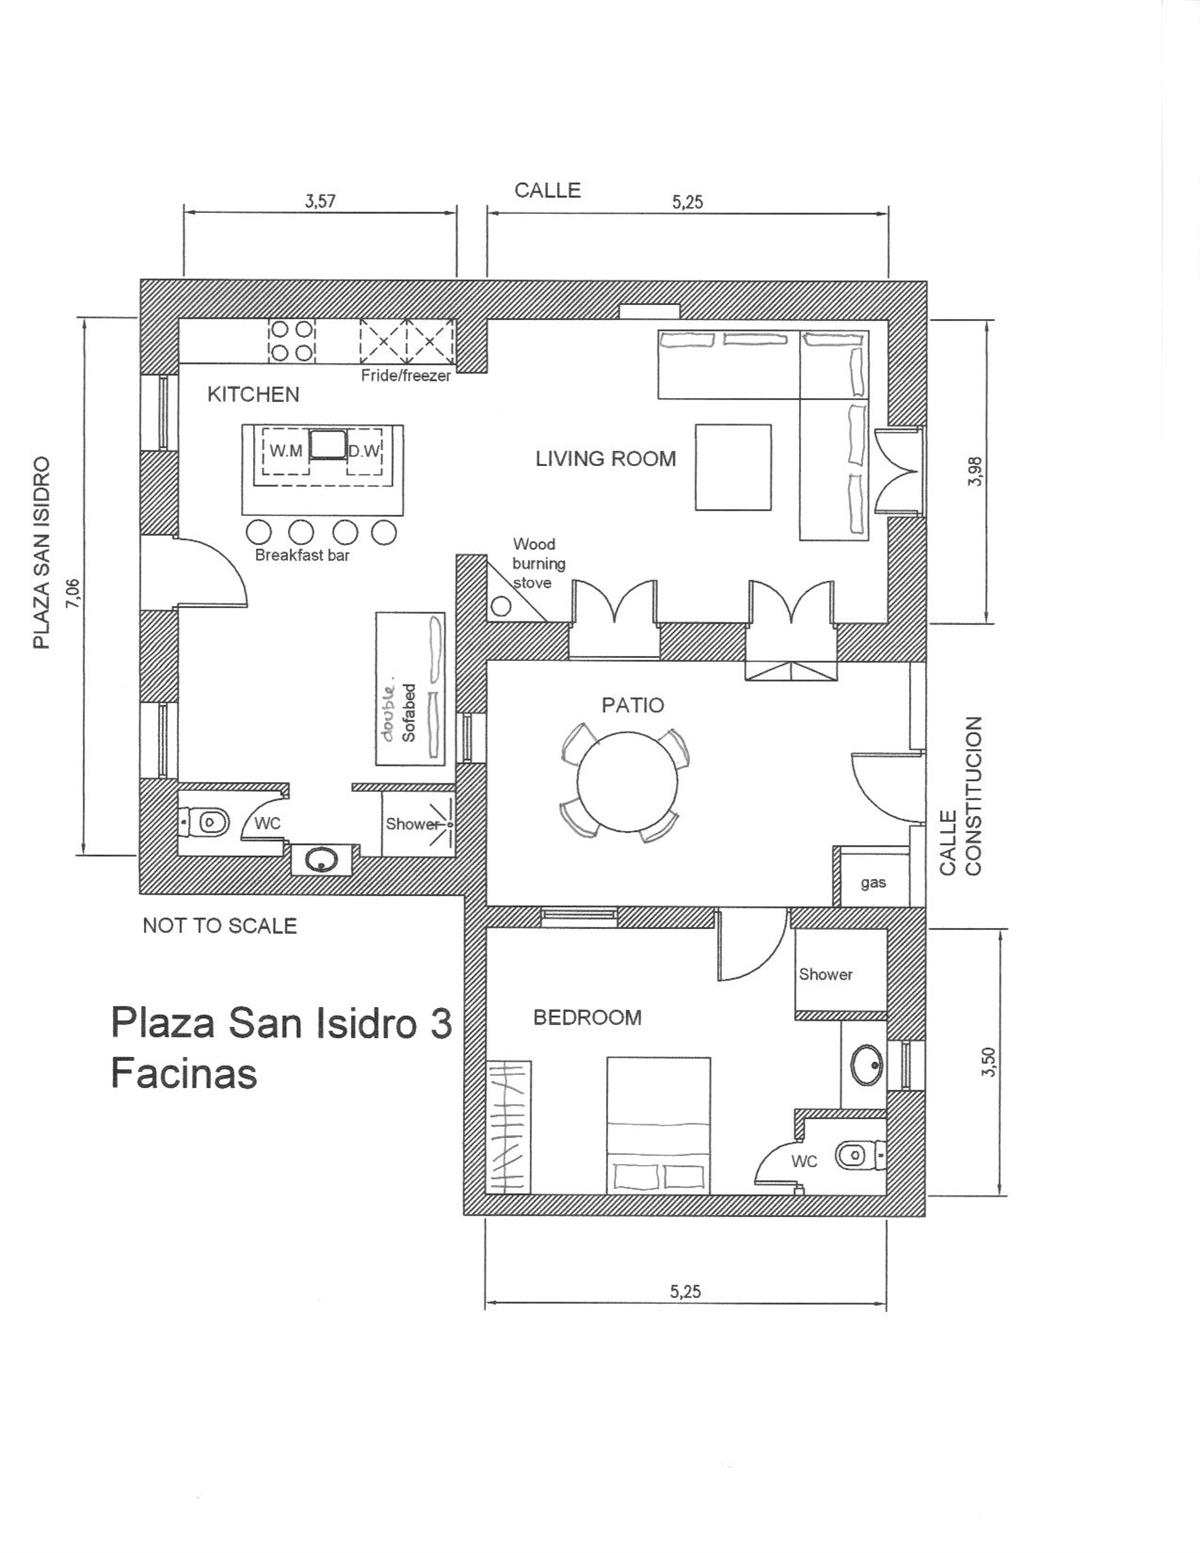 Layout of the property